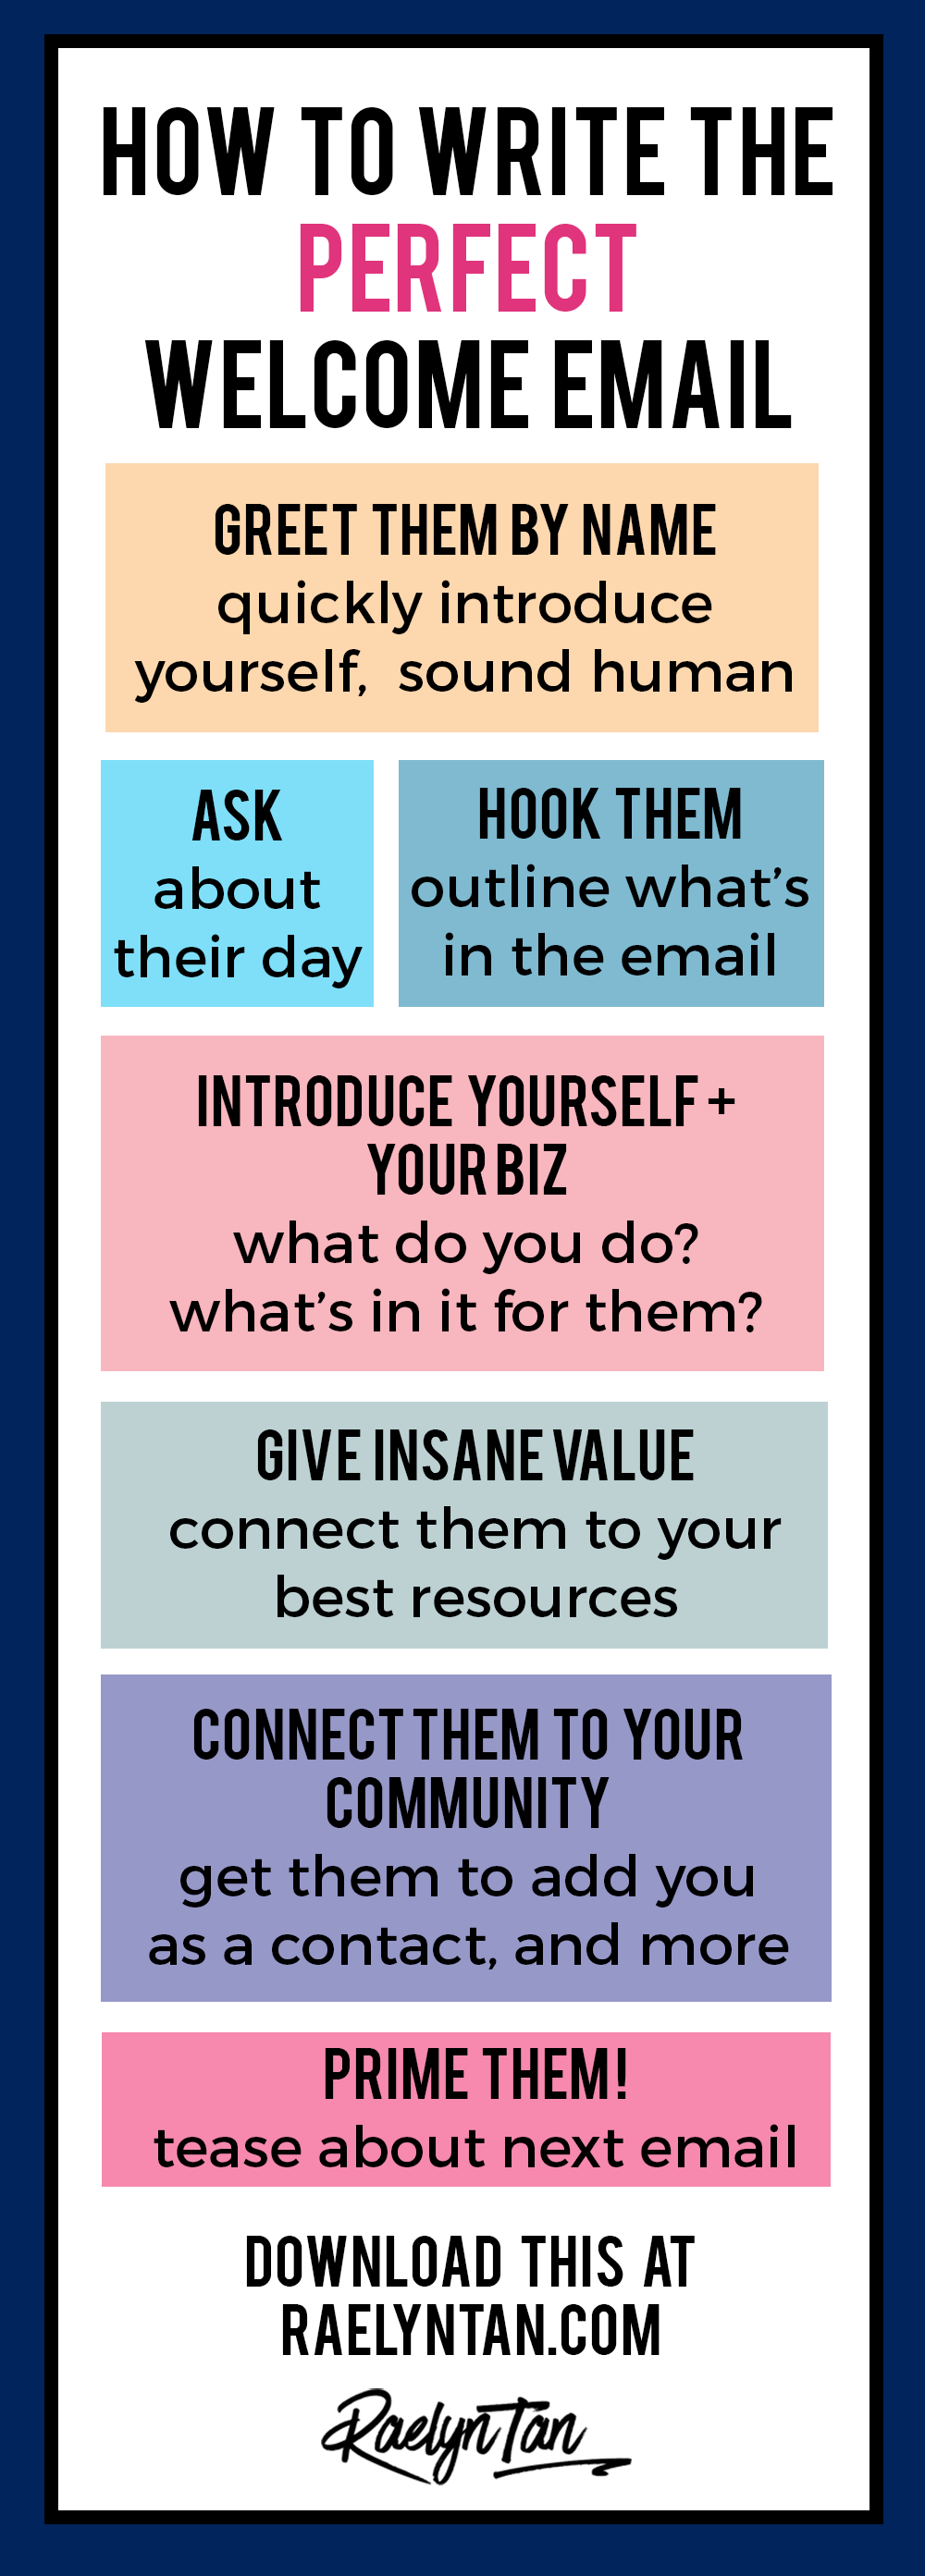 How to write the perfect welcome email printable template included how to write the perfect welcome email with examples and a printable template included wajeb Choice Image